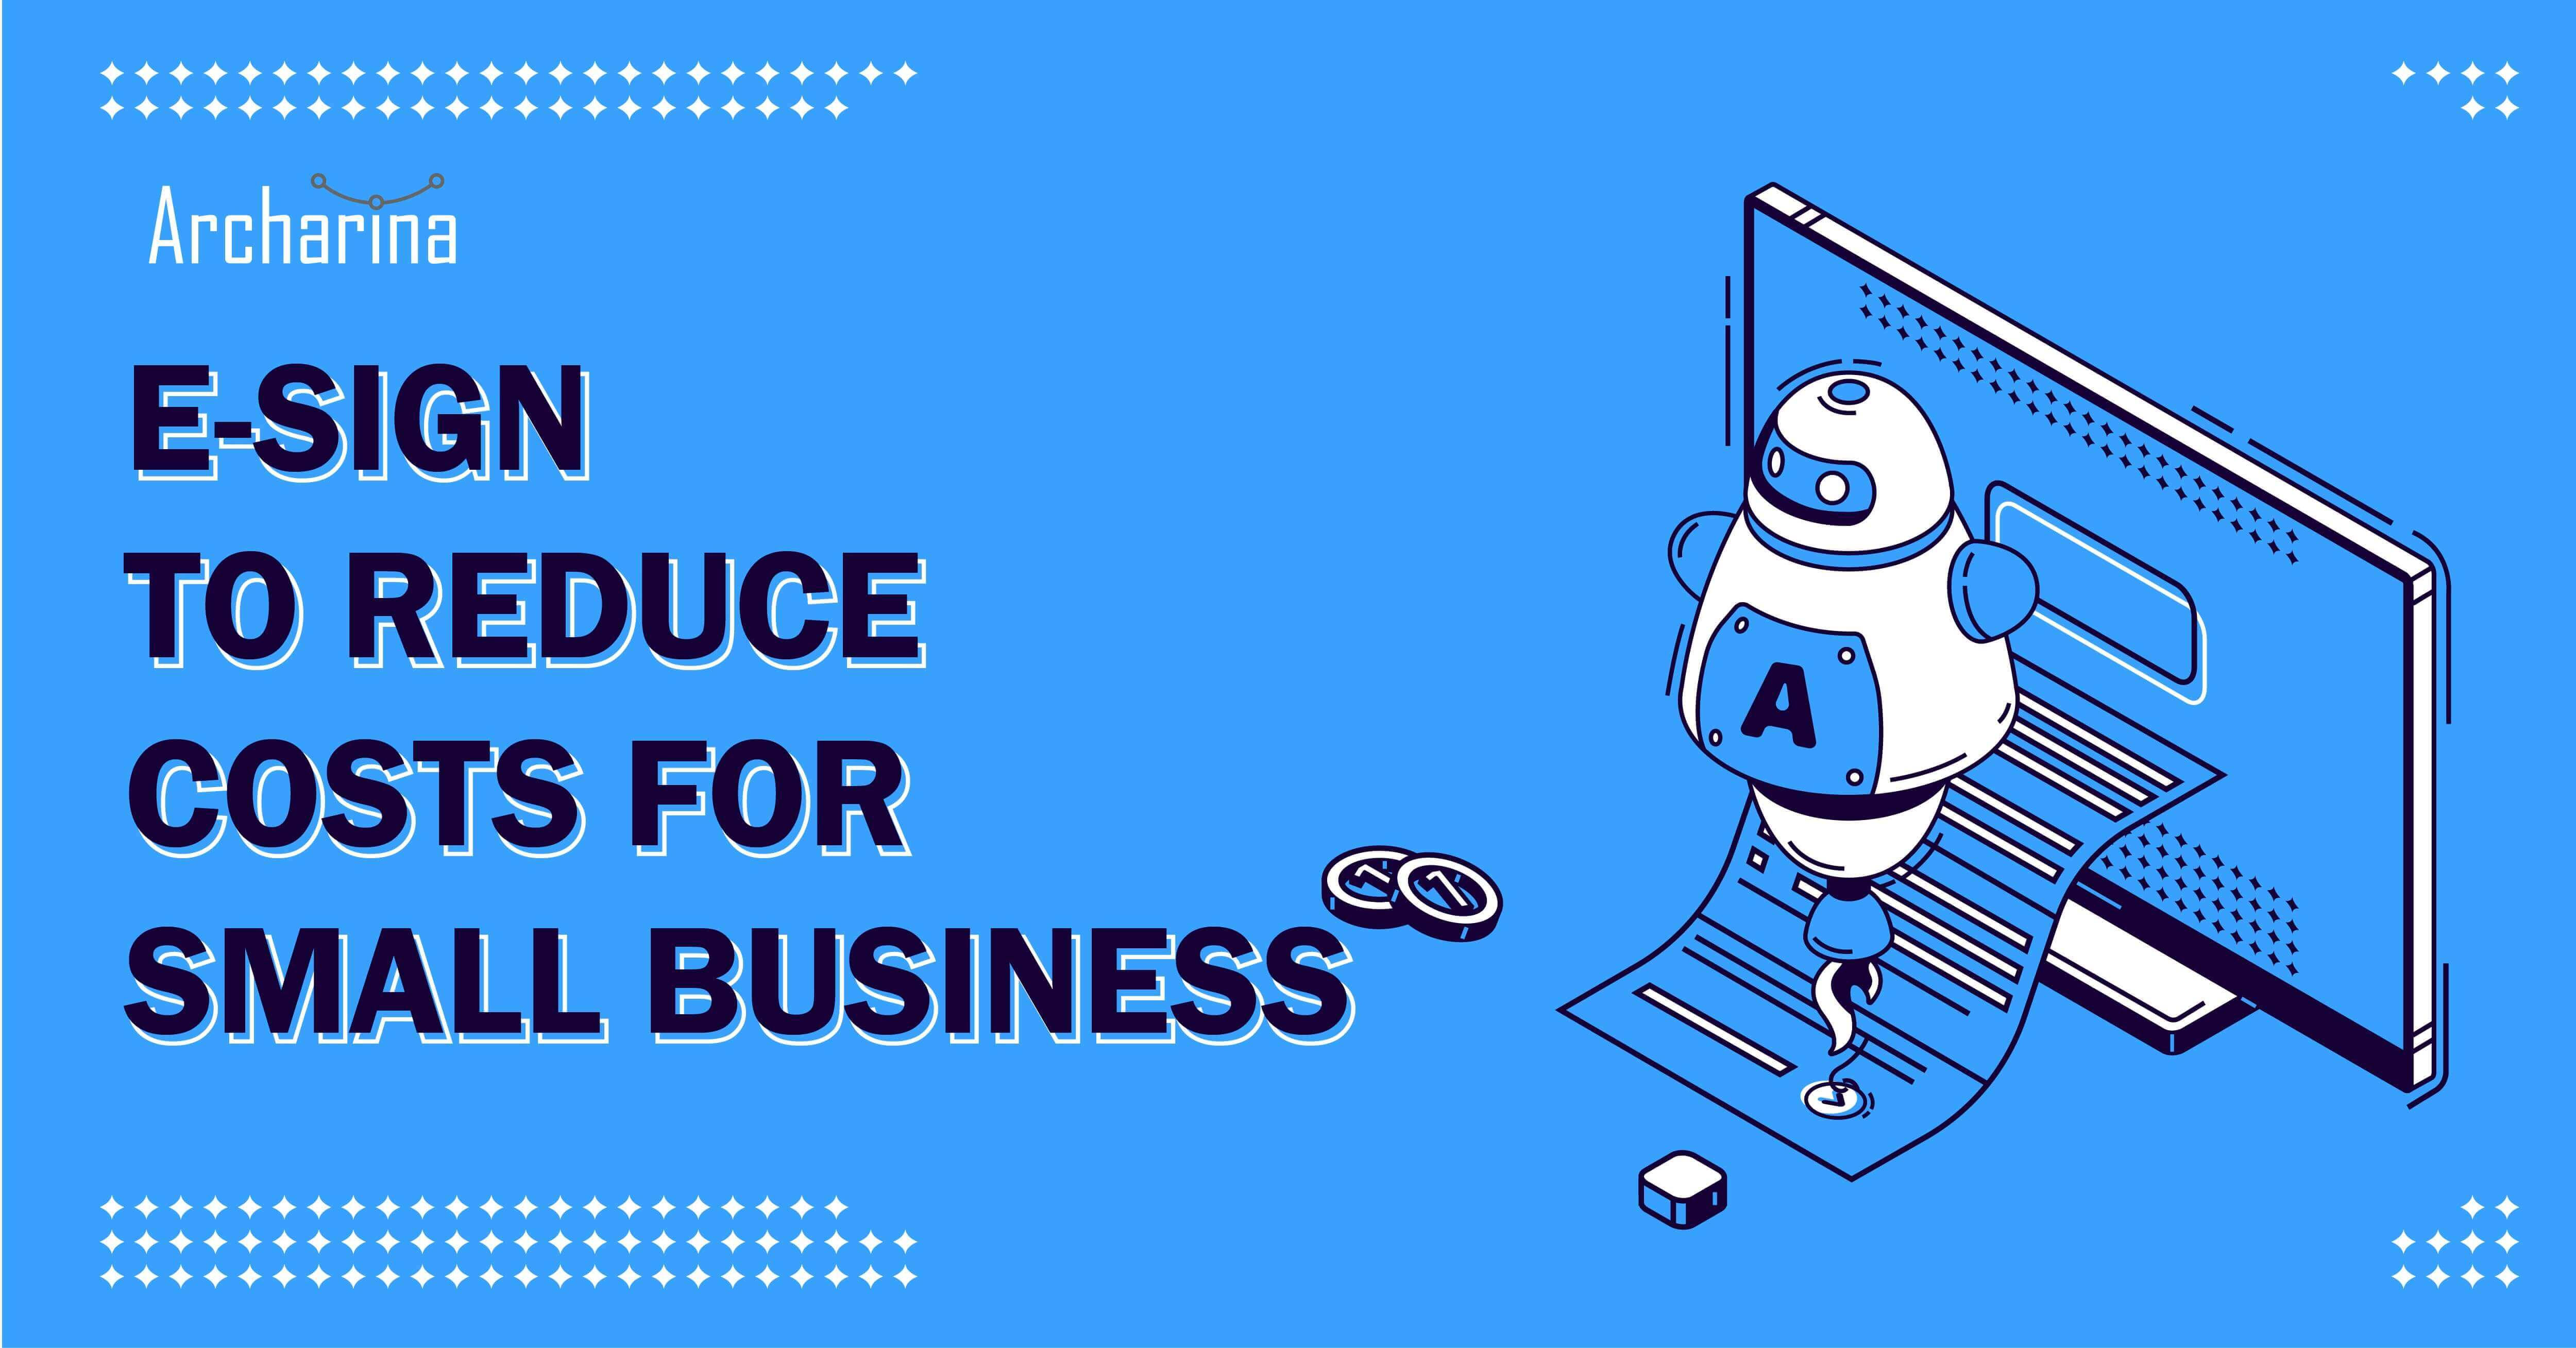 Esign-to-reduce-costs-for-small-business.jpg